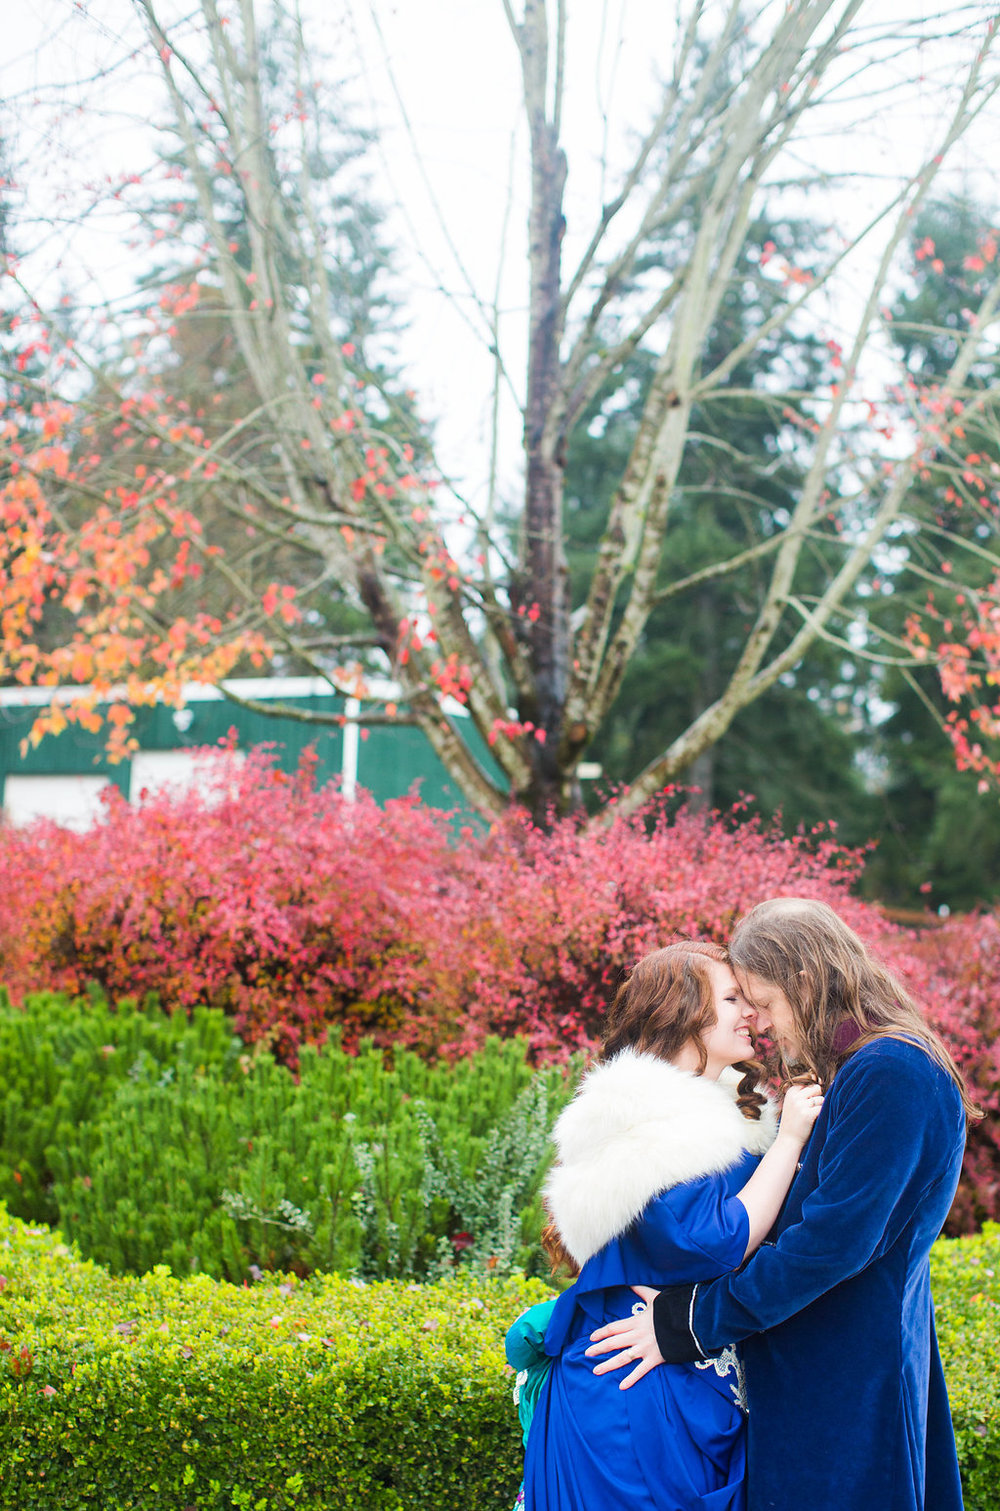 Kayce+Rick_Wedding_Seattle_Woodinville_6182015_49.jpg